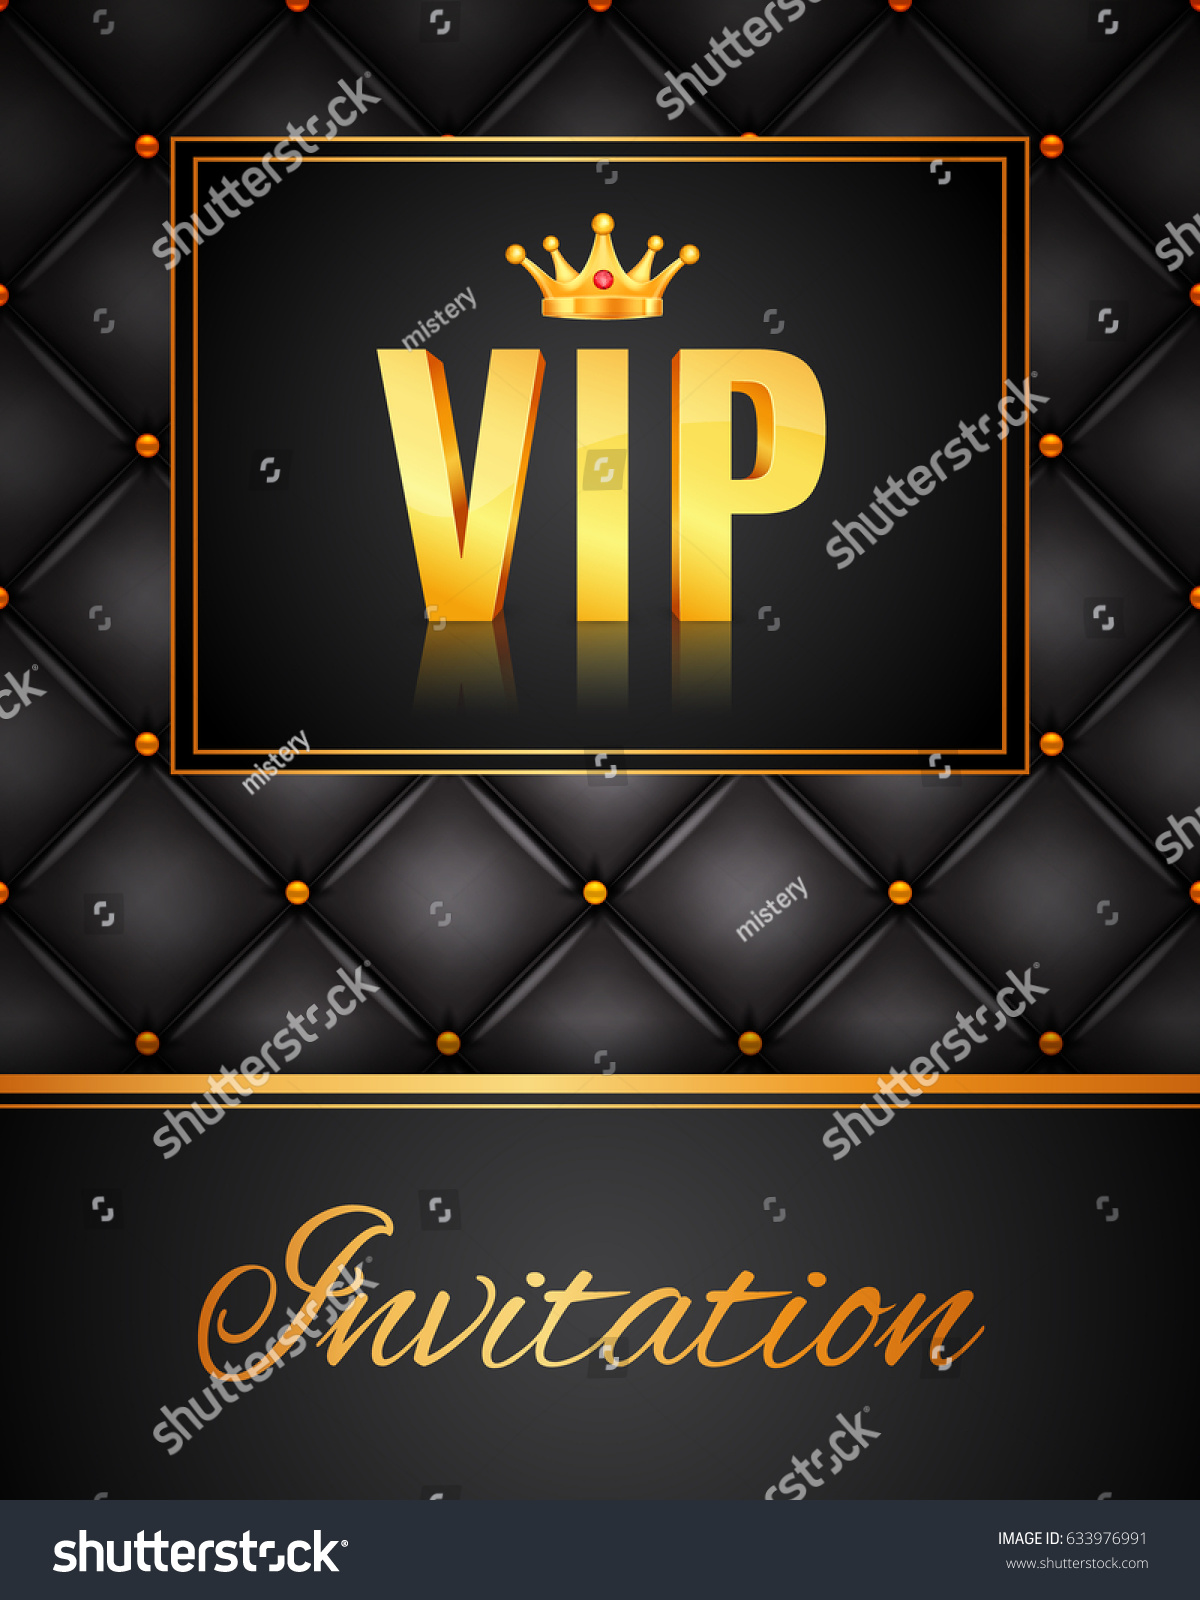 Vip Abstract Quilted Background Vip Party Stock Vector 633976991 ...